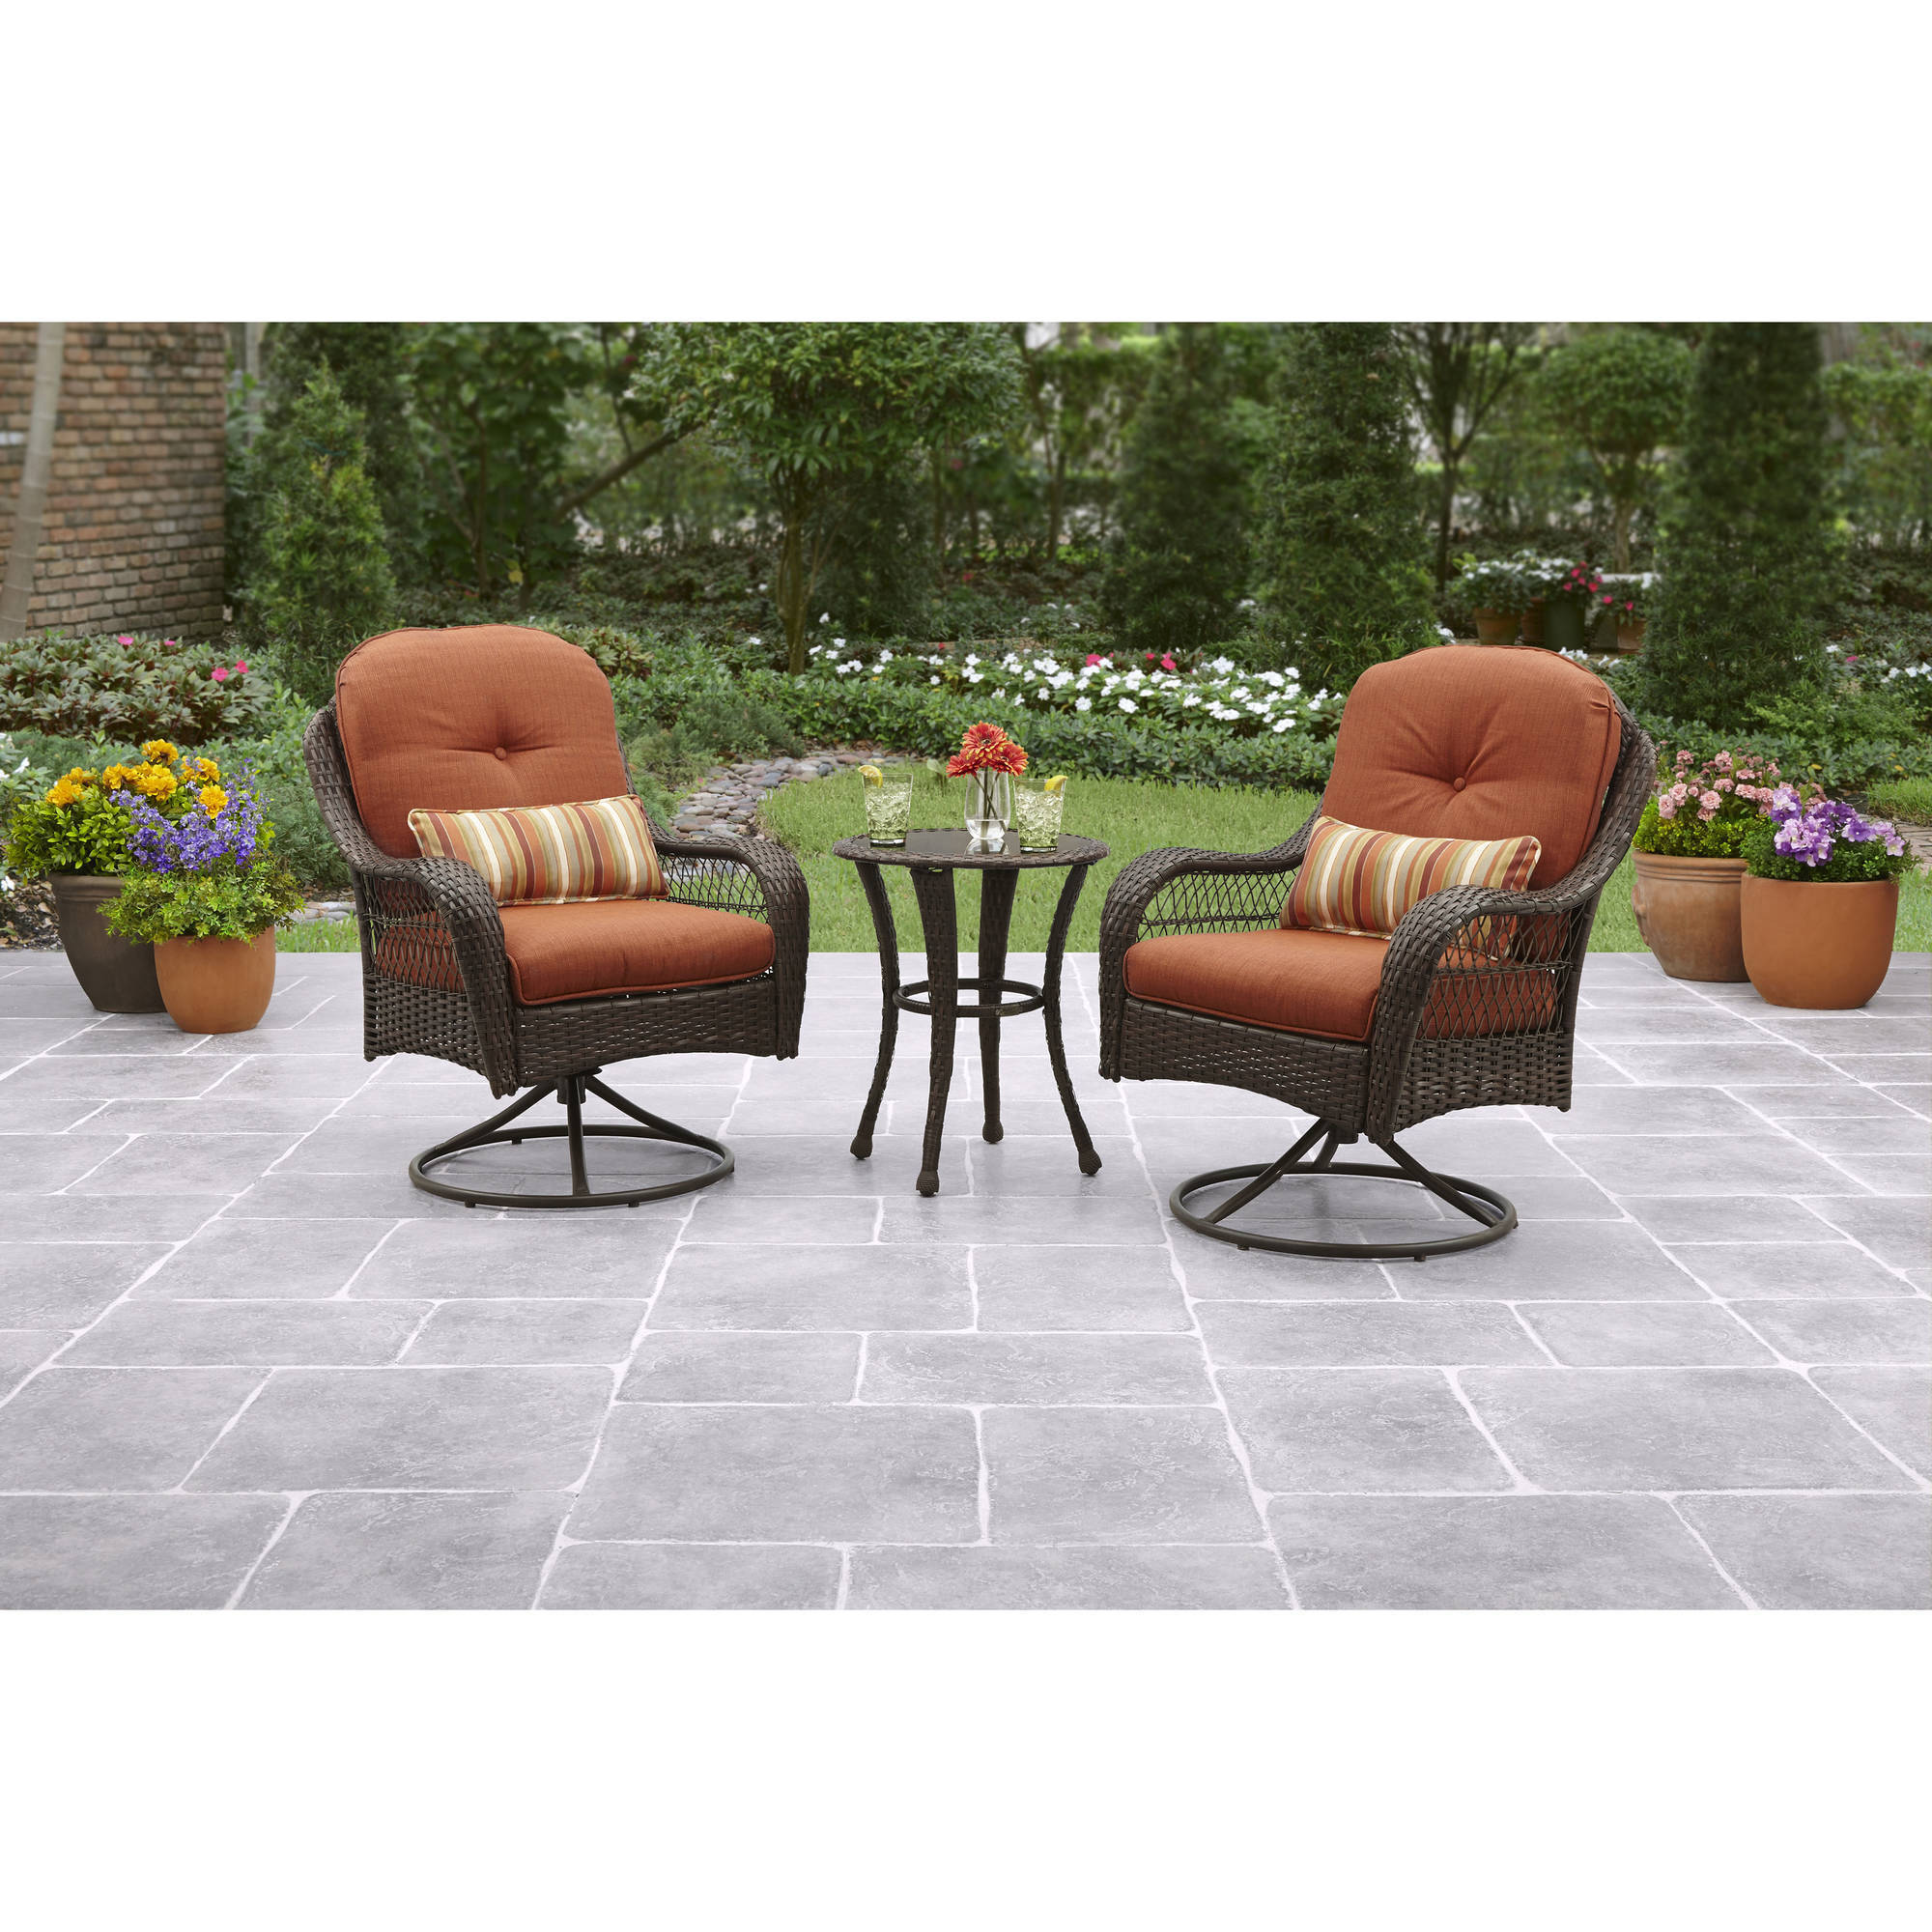 Better Homes And Gardens Azalea Ridge 3 Piece Outdoor Bistro Set    Walmart.com